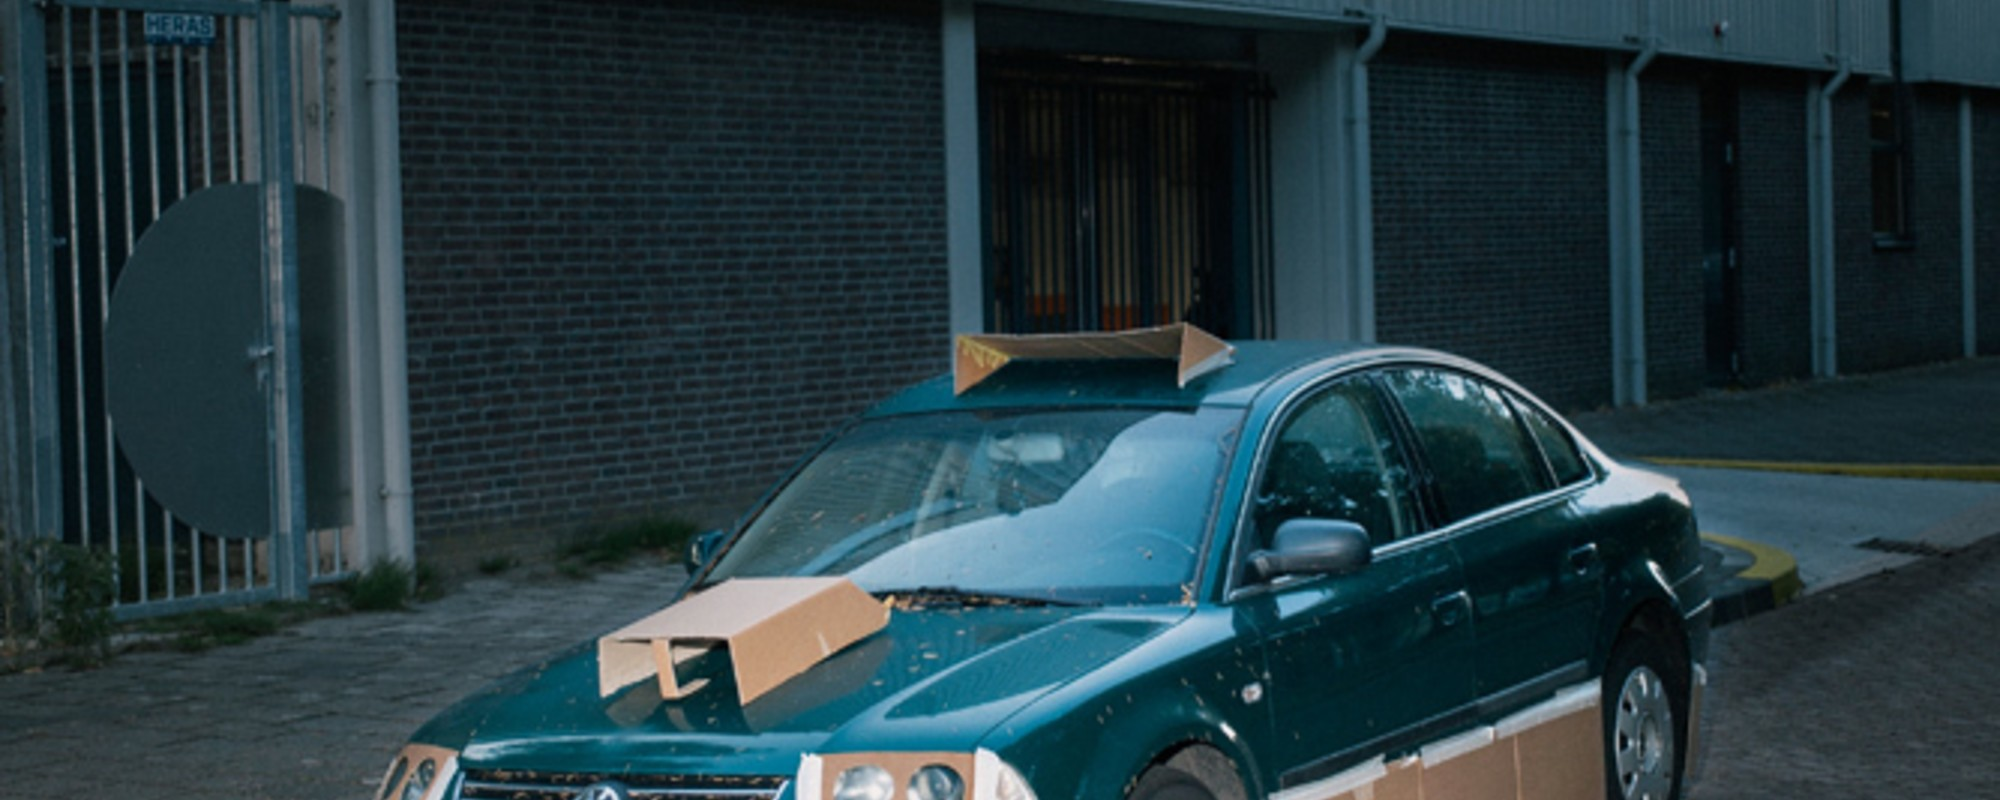 This Guy Walks the Streets at Night Pimping Strangers' Rides with Cardboard